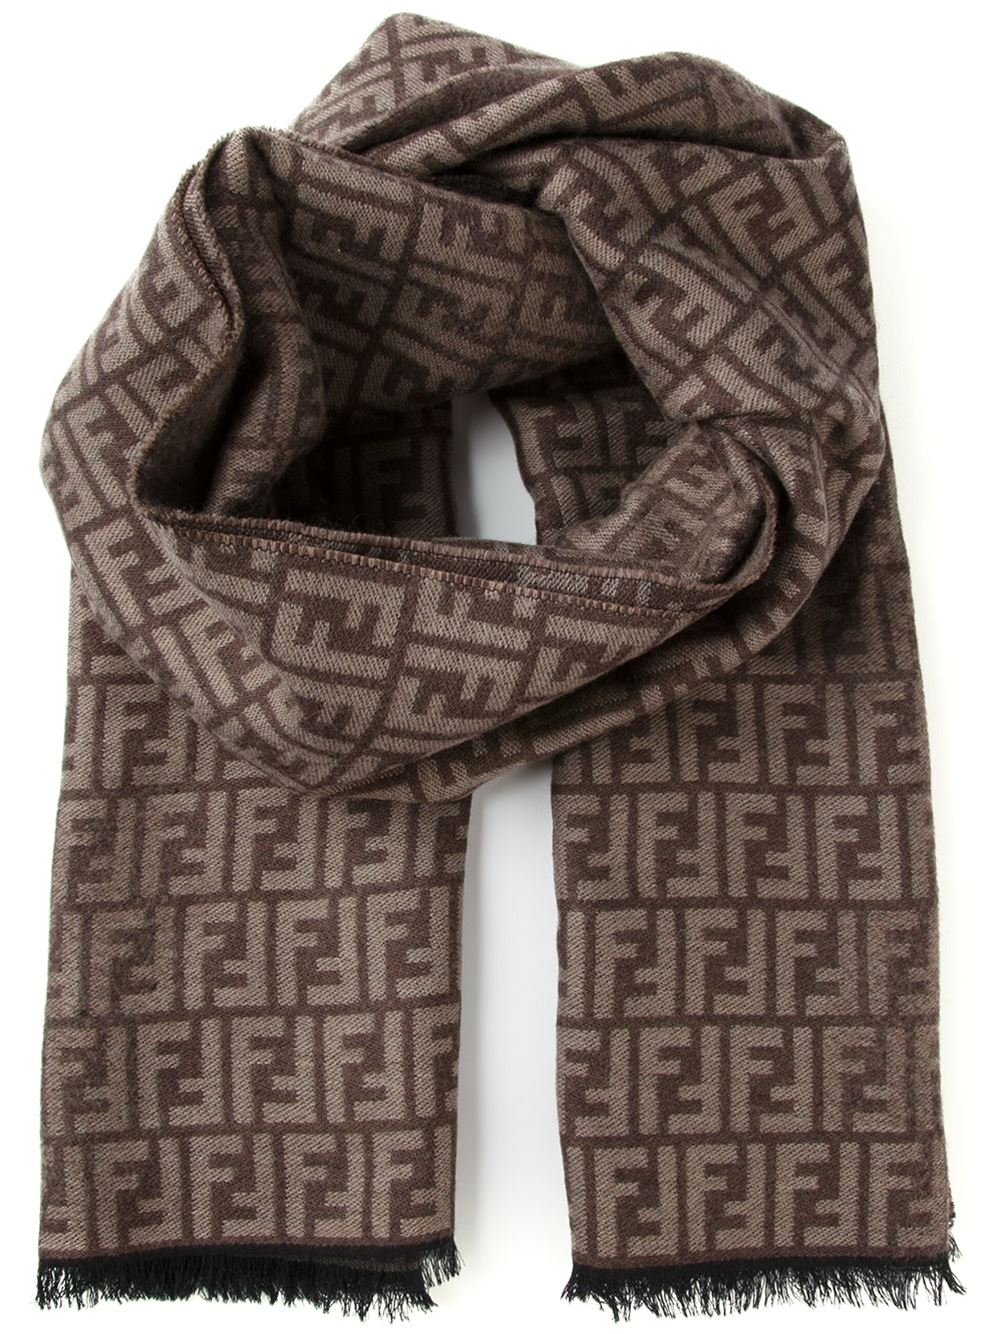 4b5a9a74993 Fendi Ff Logo Scarf in Brown for Men - Lyst